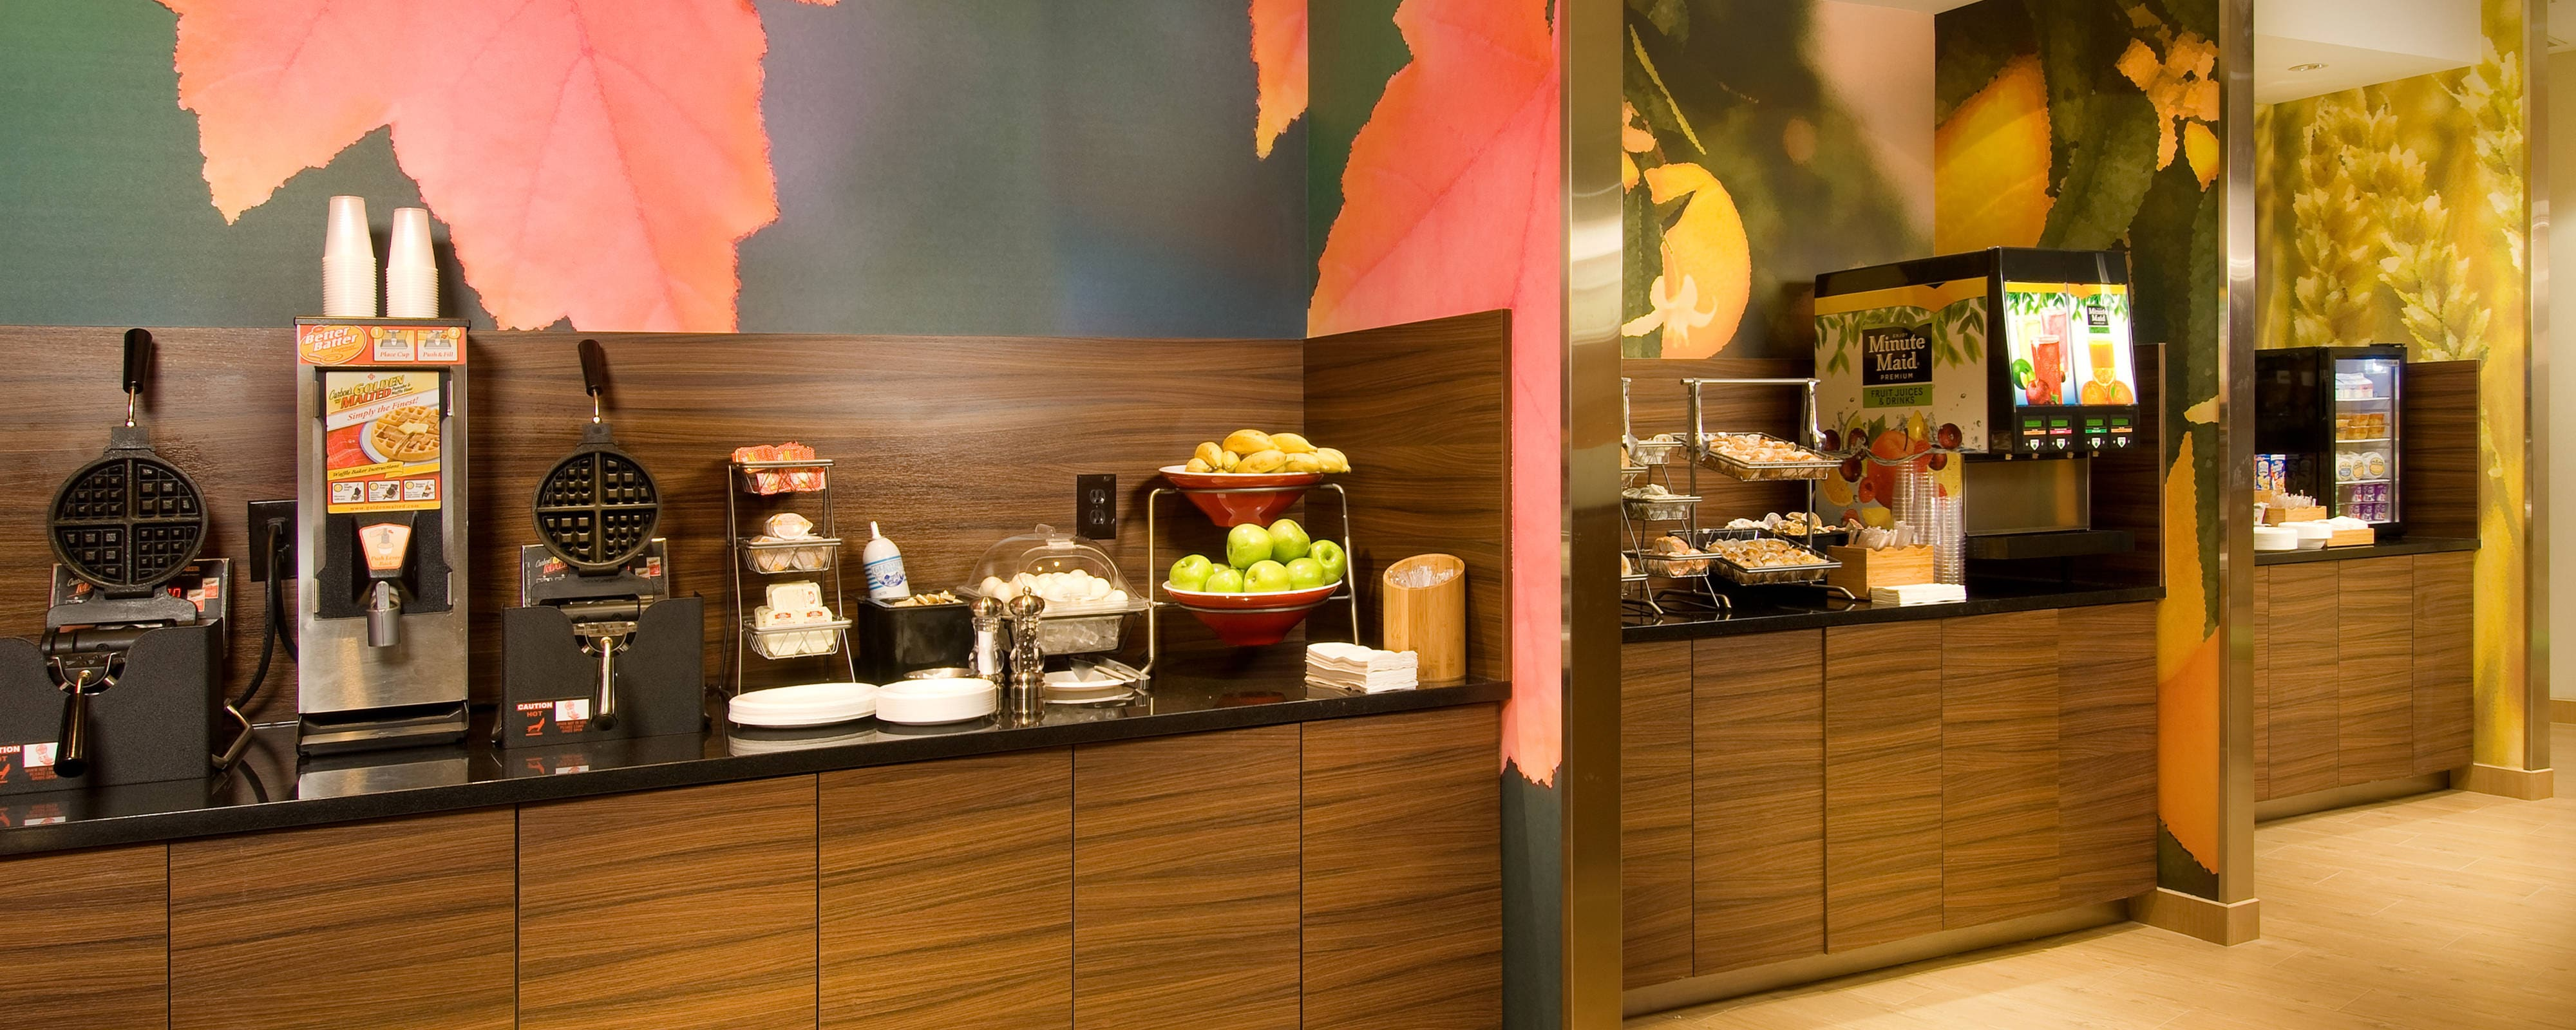 Bwi Airport Hotel With Free Breakfast Fairfield Inn